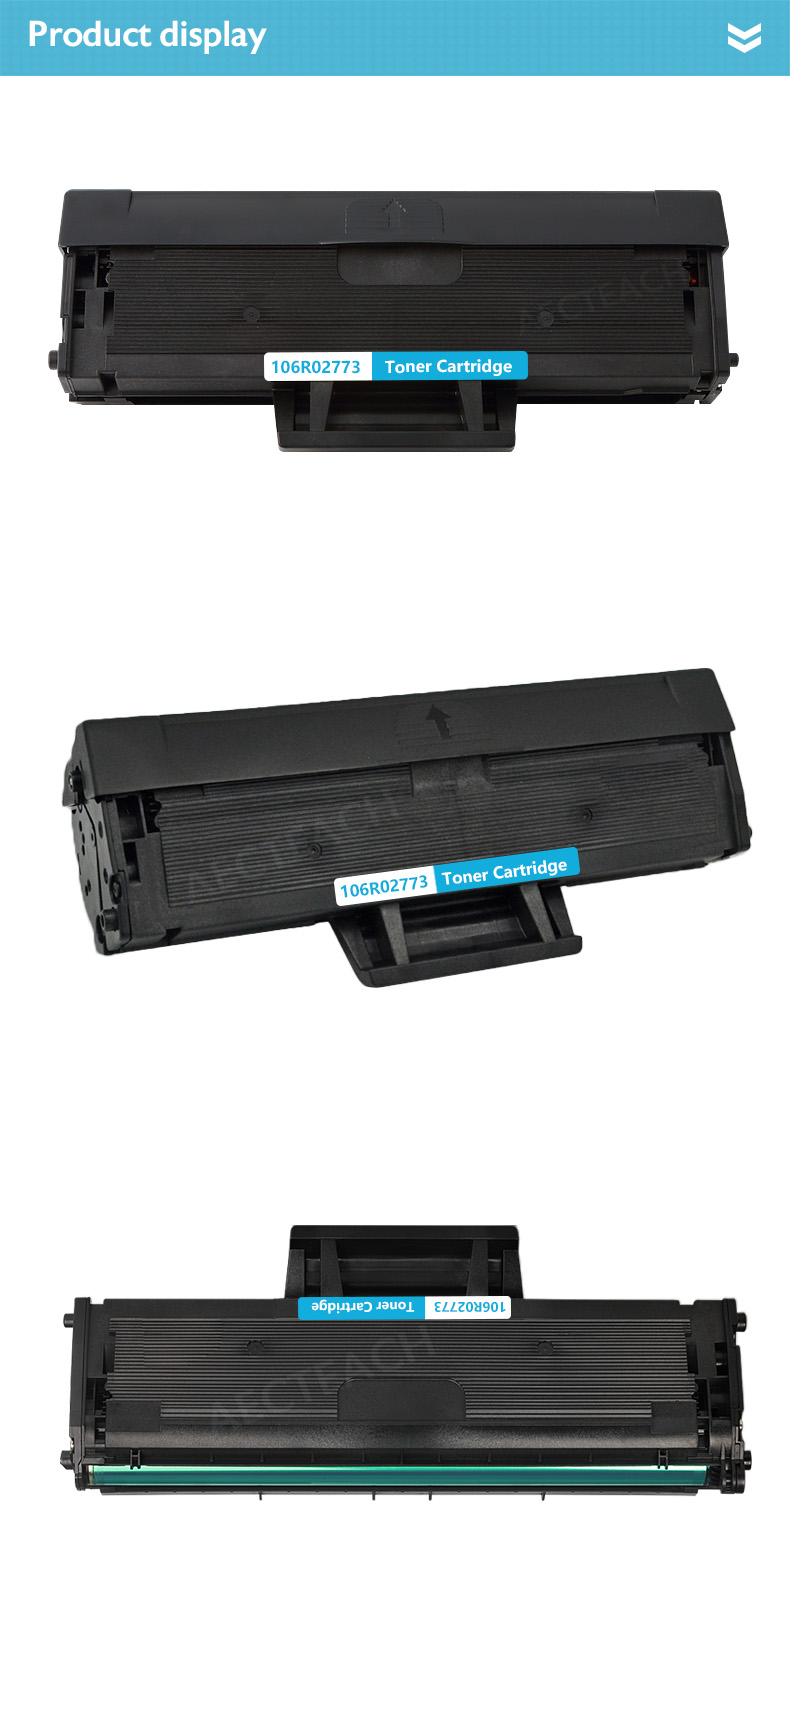 3Pack Black 106R02773 Compatible Toner Cartridge for Xerox WorkCentre 3025 3020